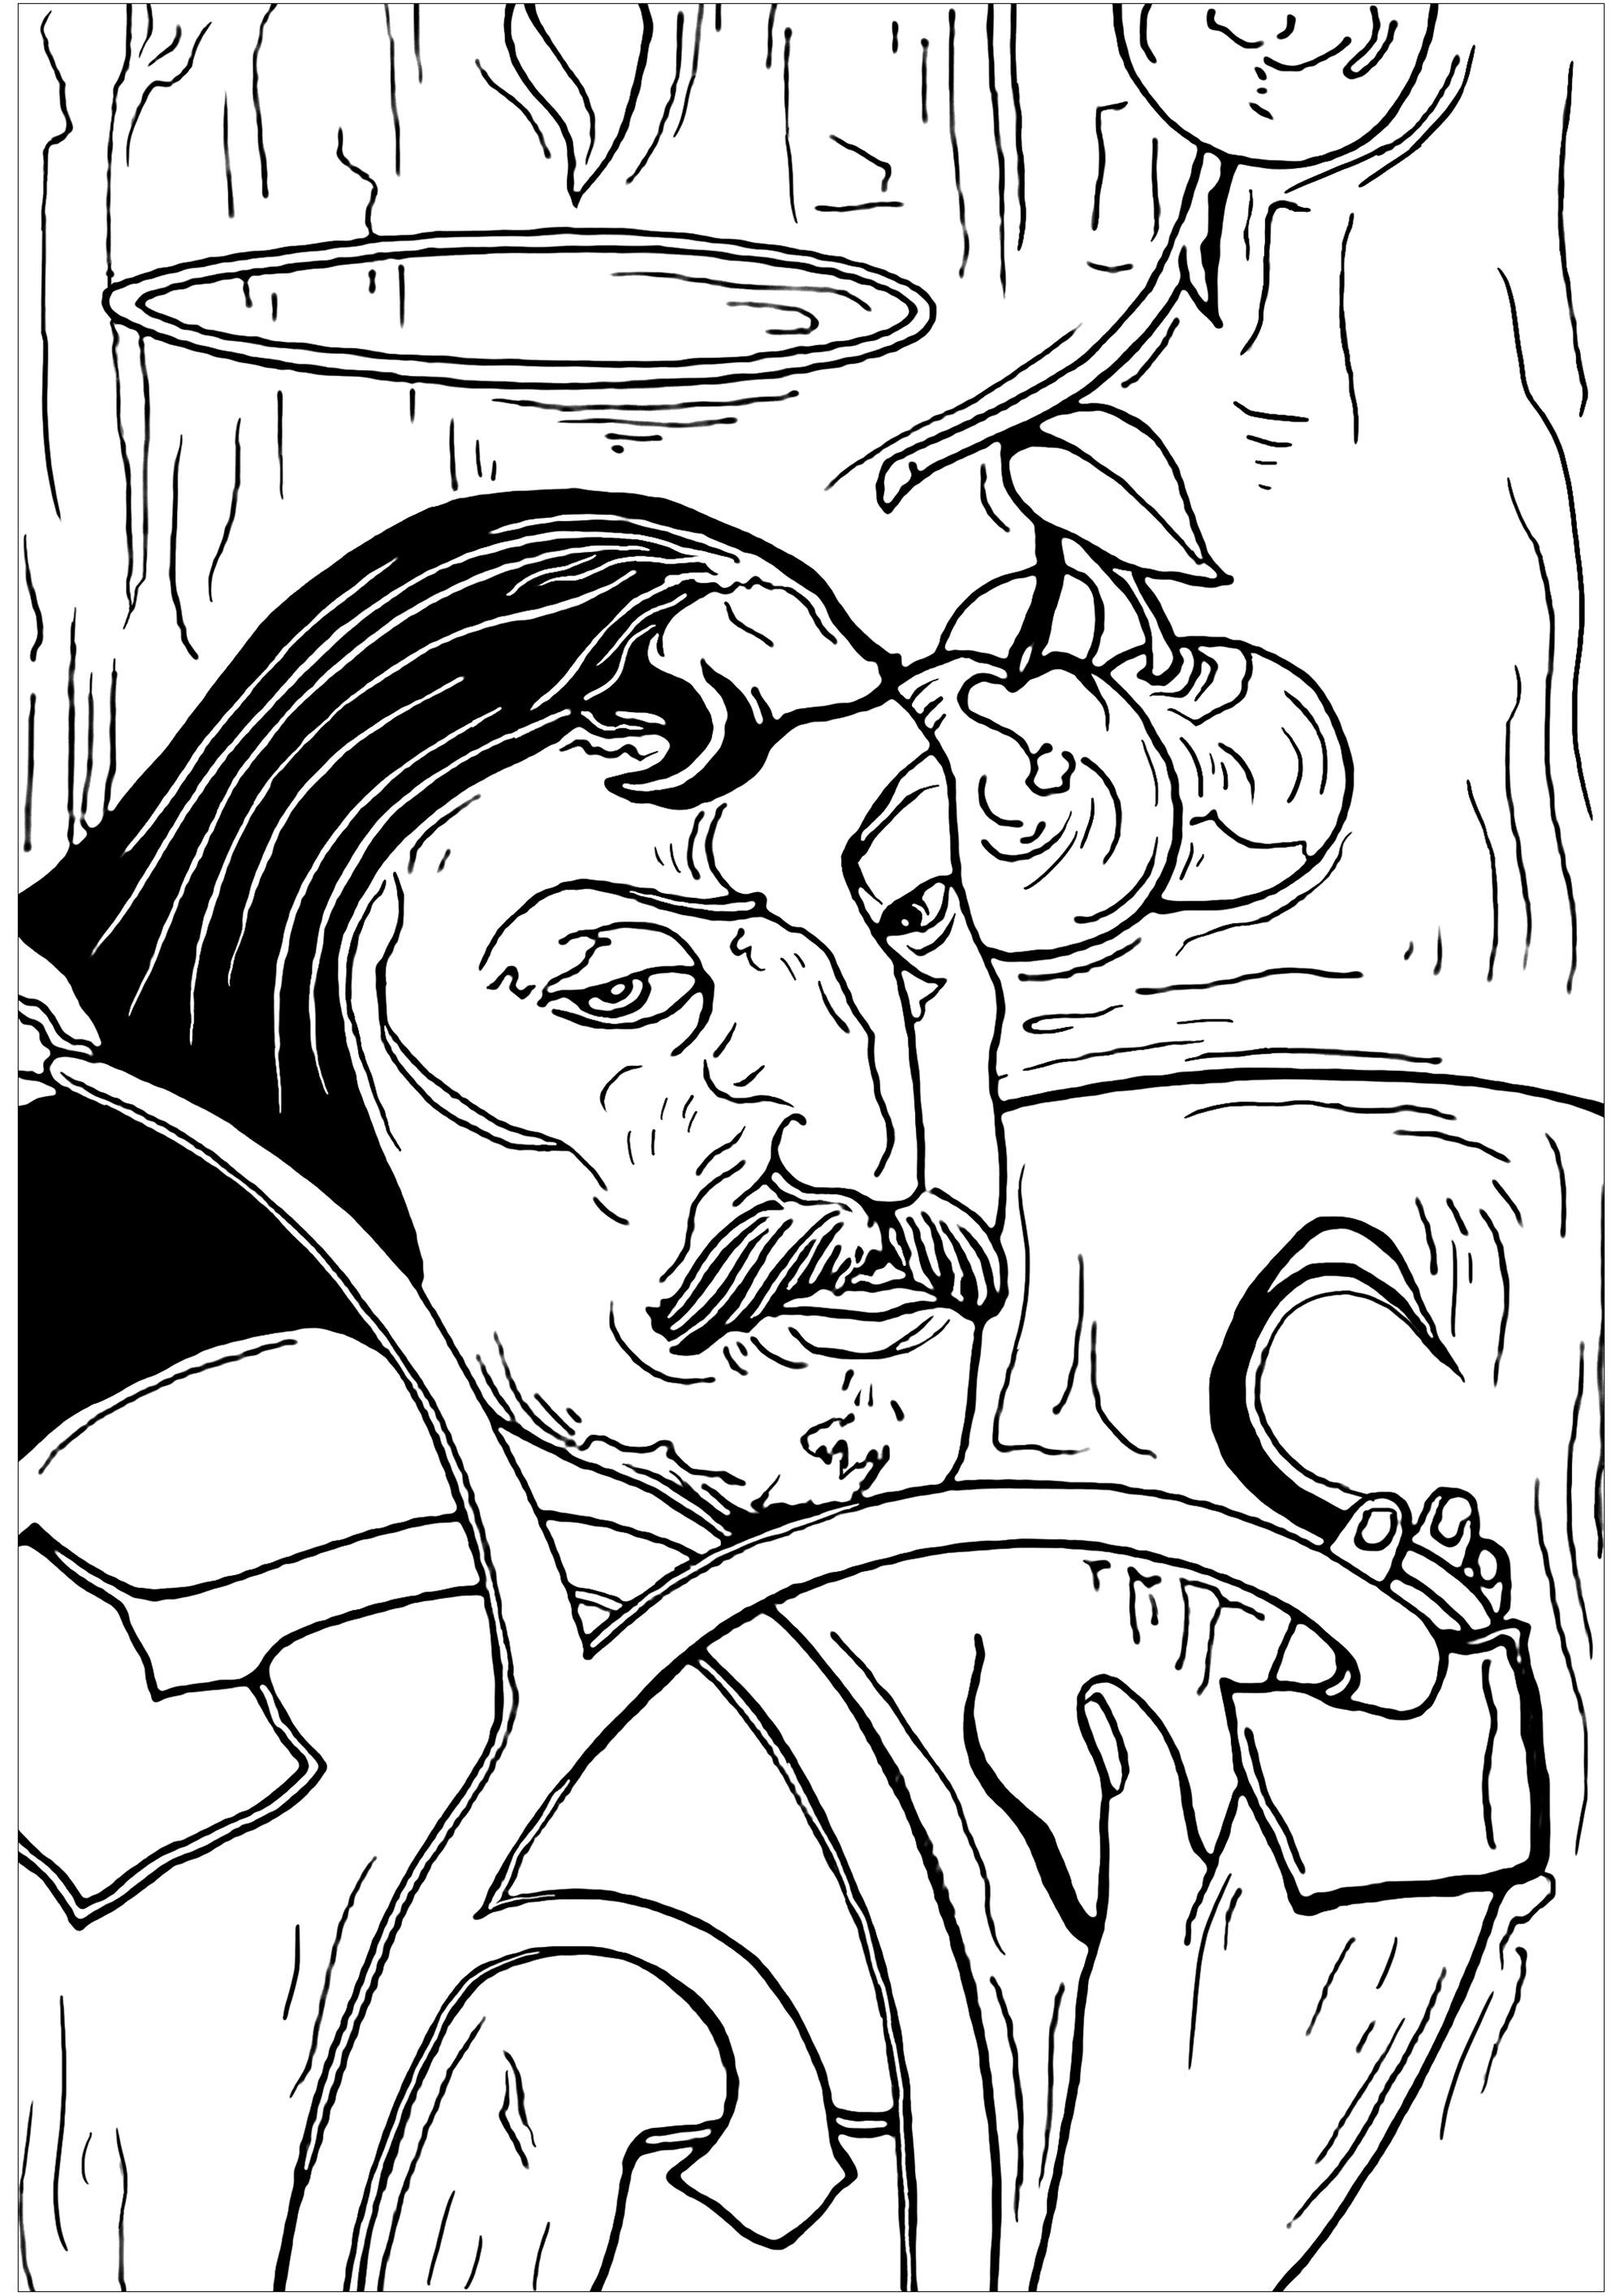 Coloring page inspired by a self-portrait by artist Paul Gauguin : Self-Portrait with Halo